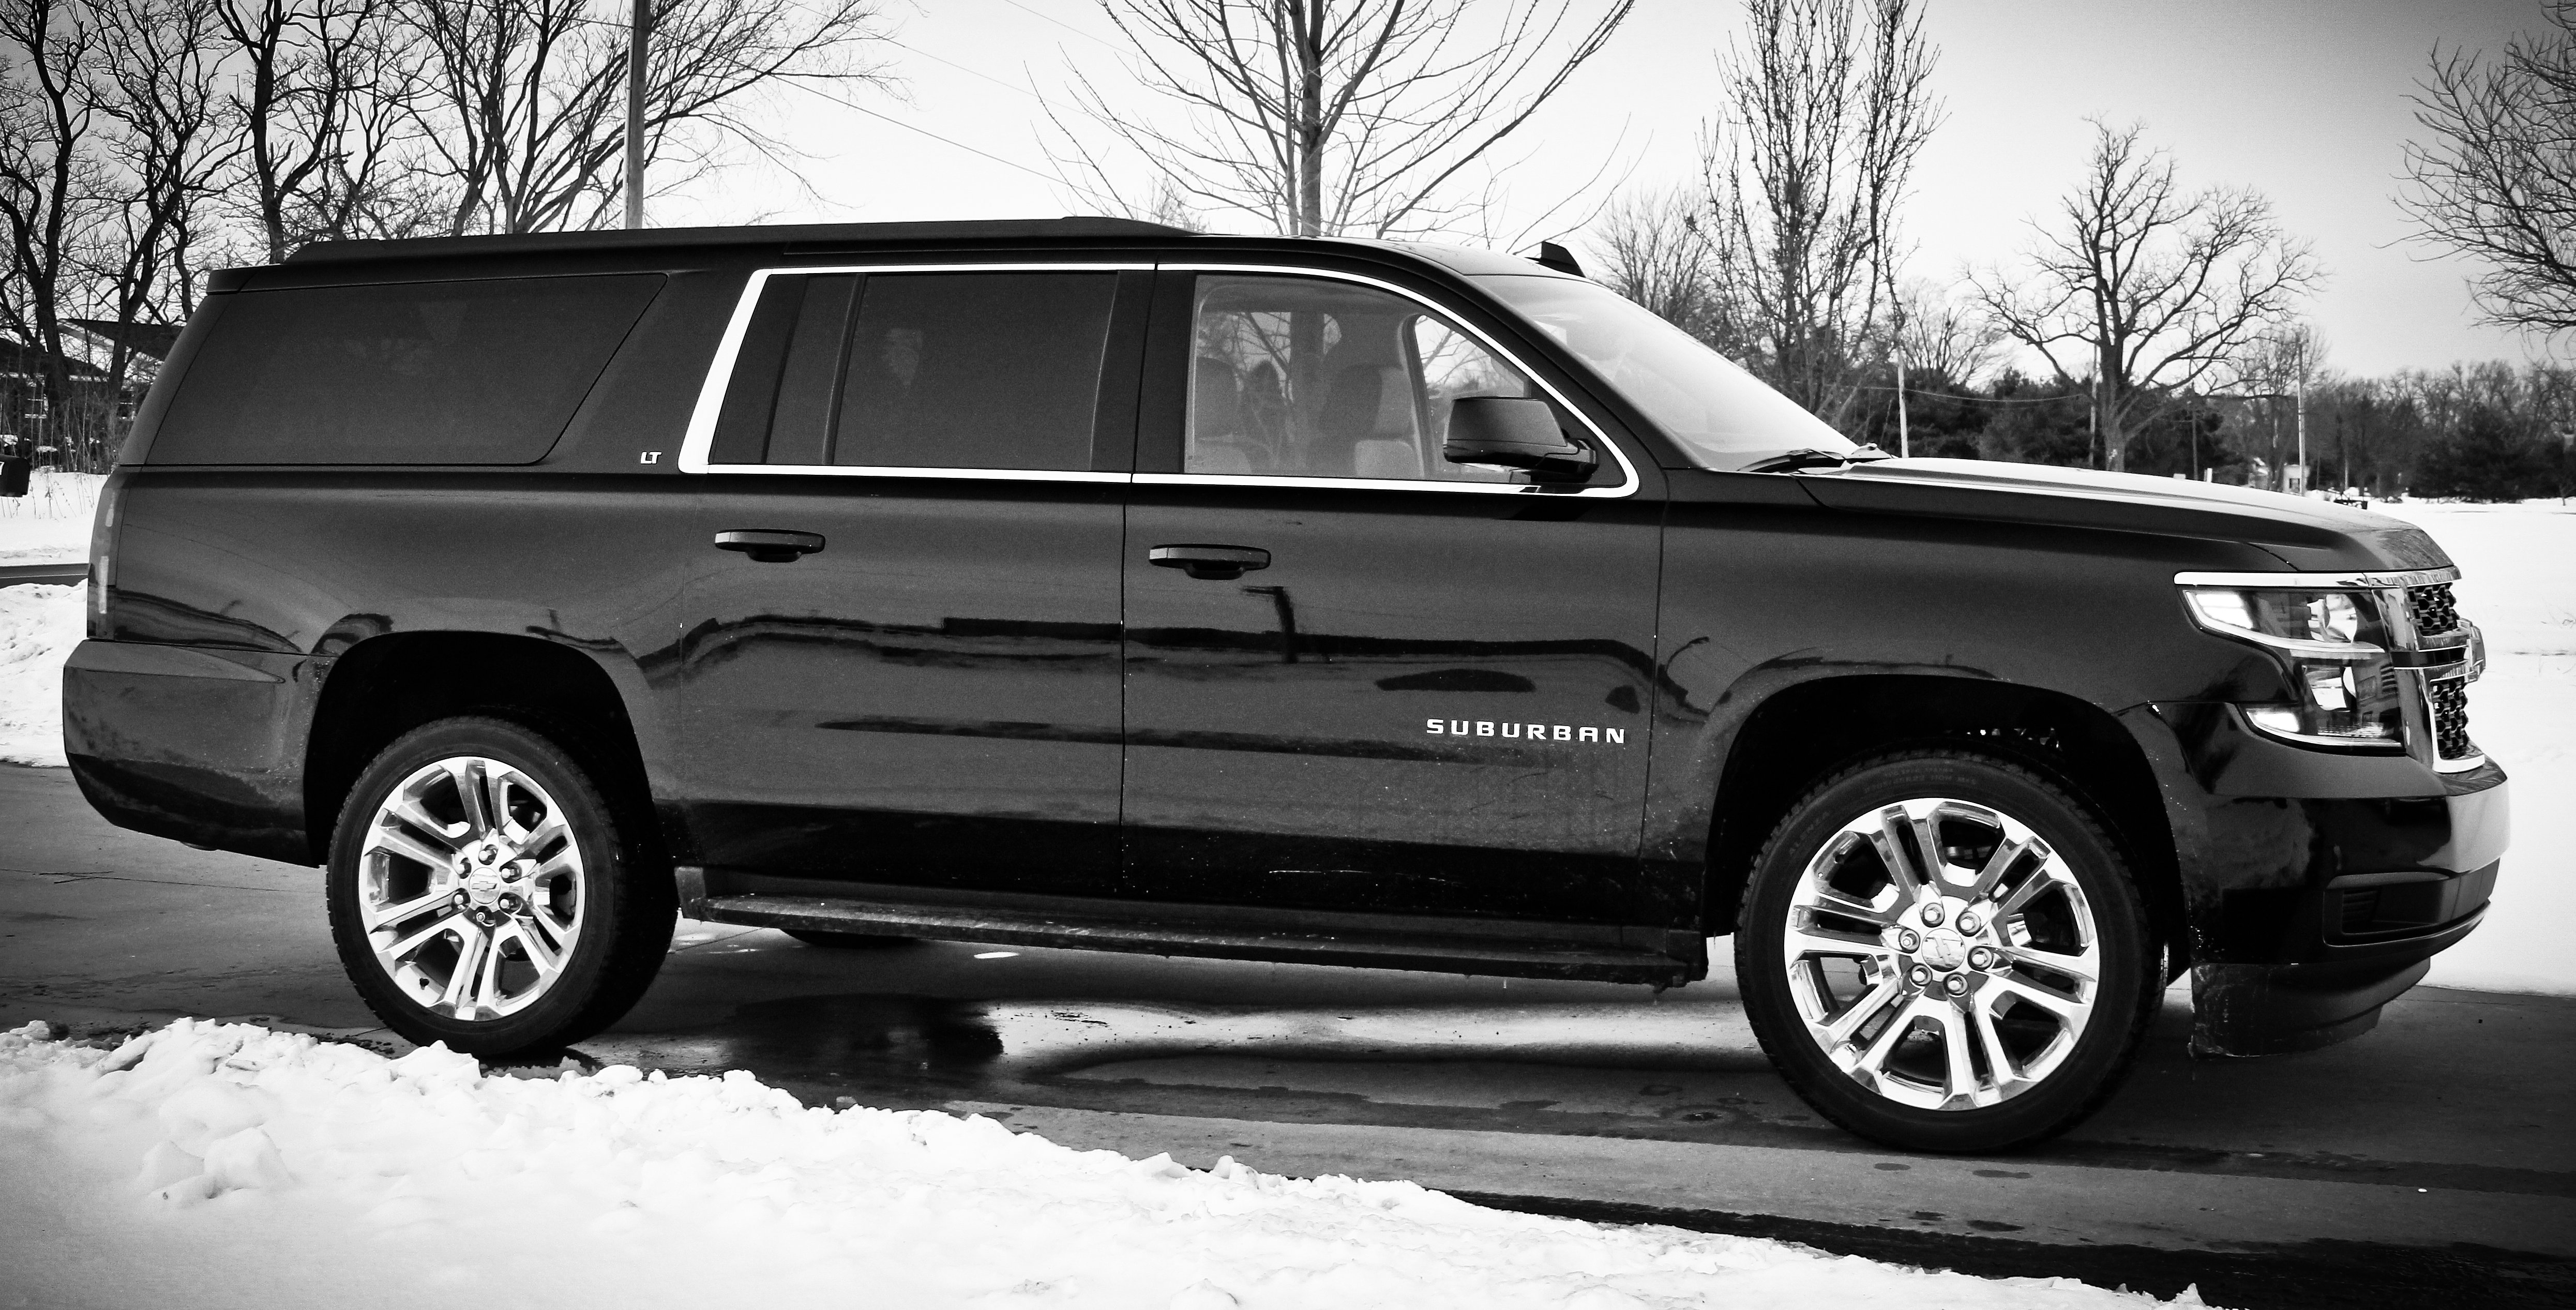 6 Passenger Suv >> Out On A Limo | Chevy Suburban SUV